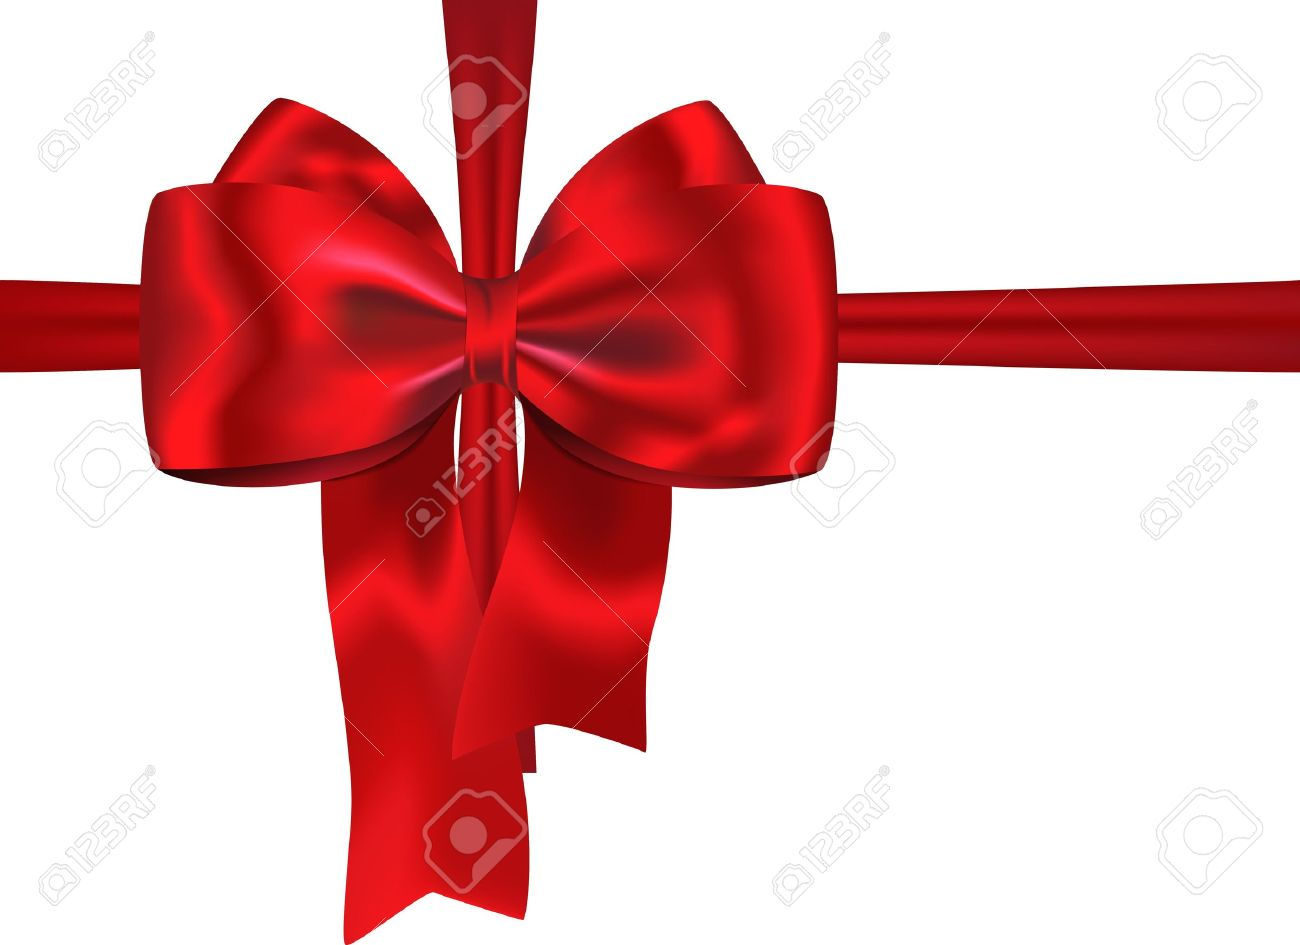 Red gift bows border with clipping path for easy background removing - Red Bow Red Gift Ribbon With Luxurious Bow Isolated On White Background